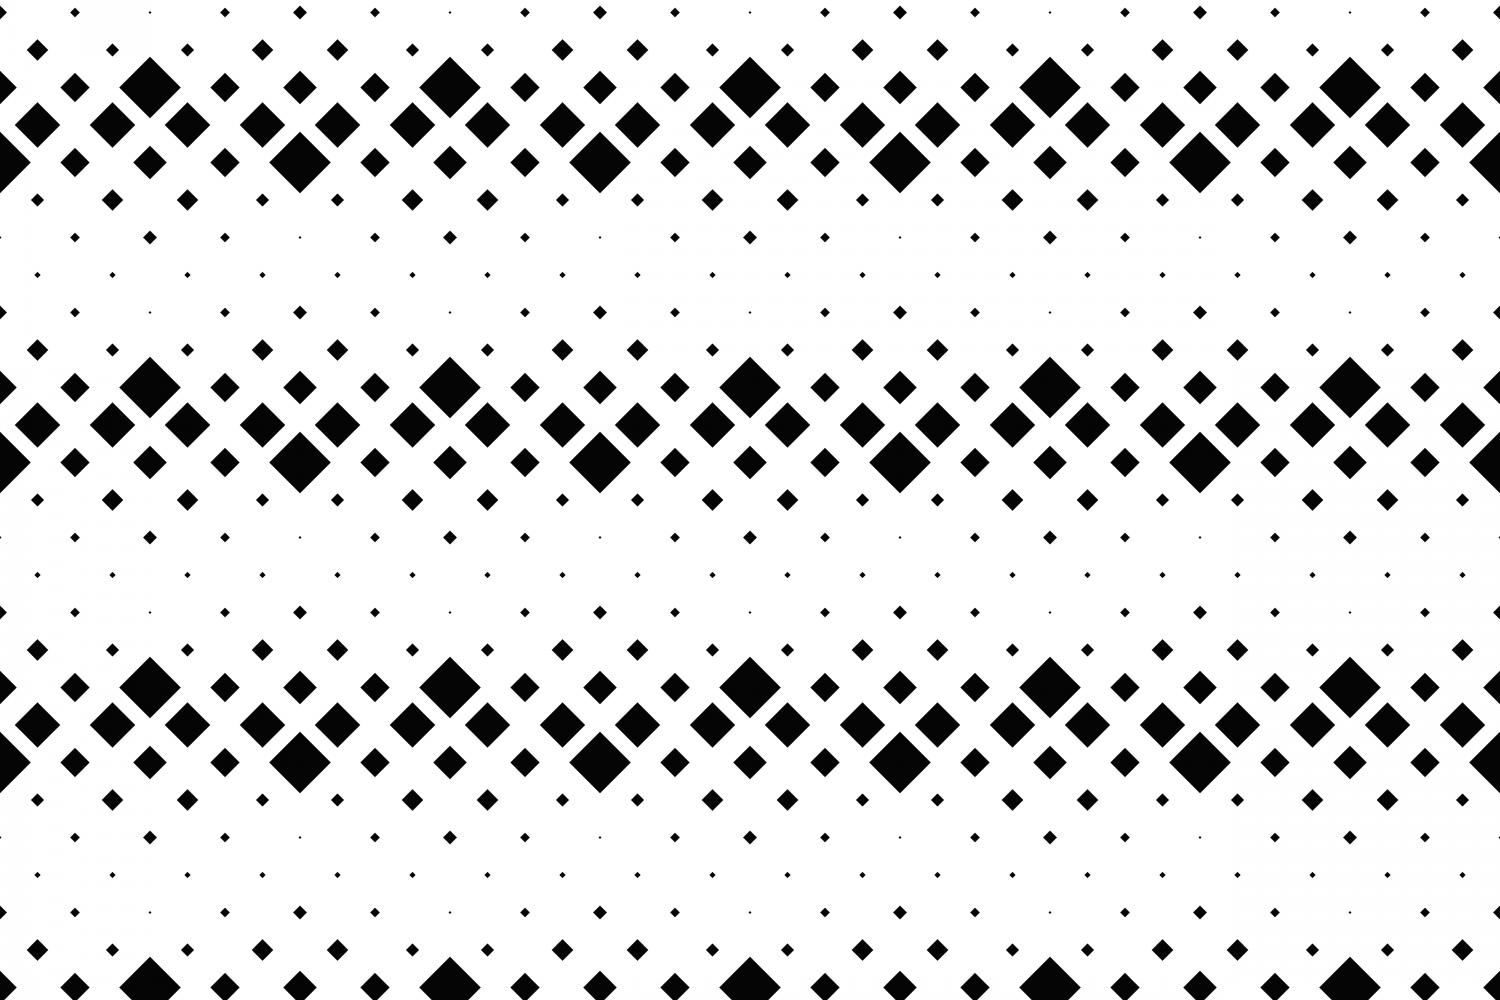 24 Seamless Square Patterns example image 5